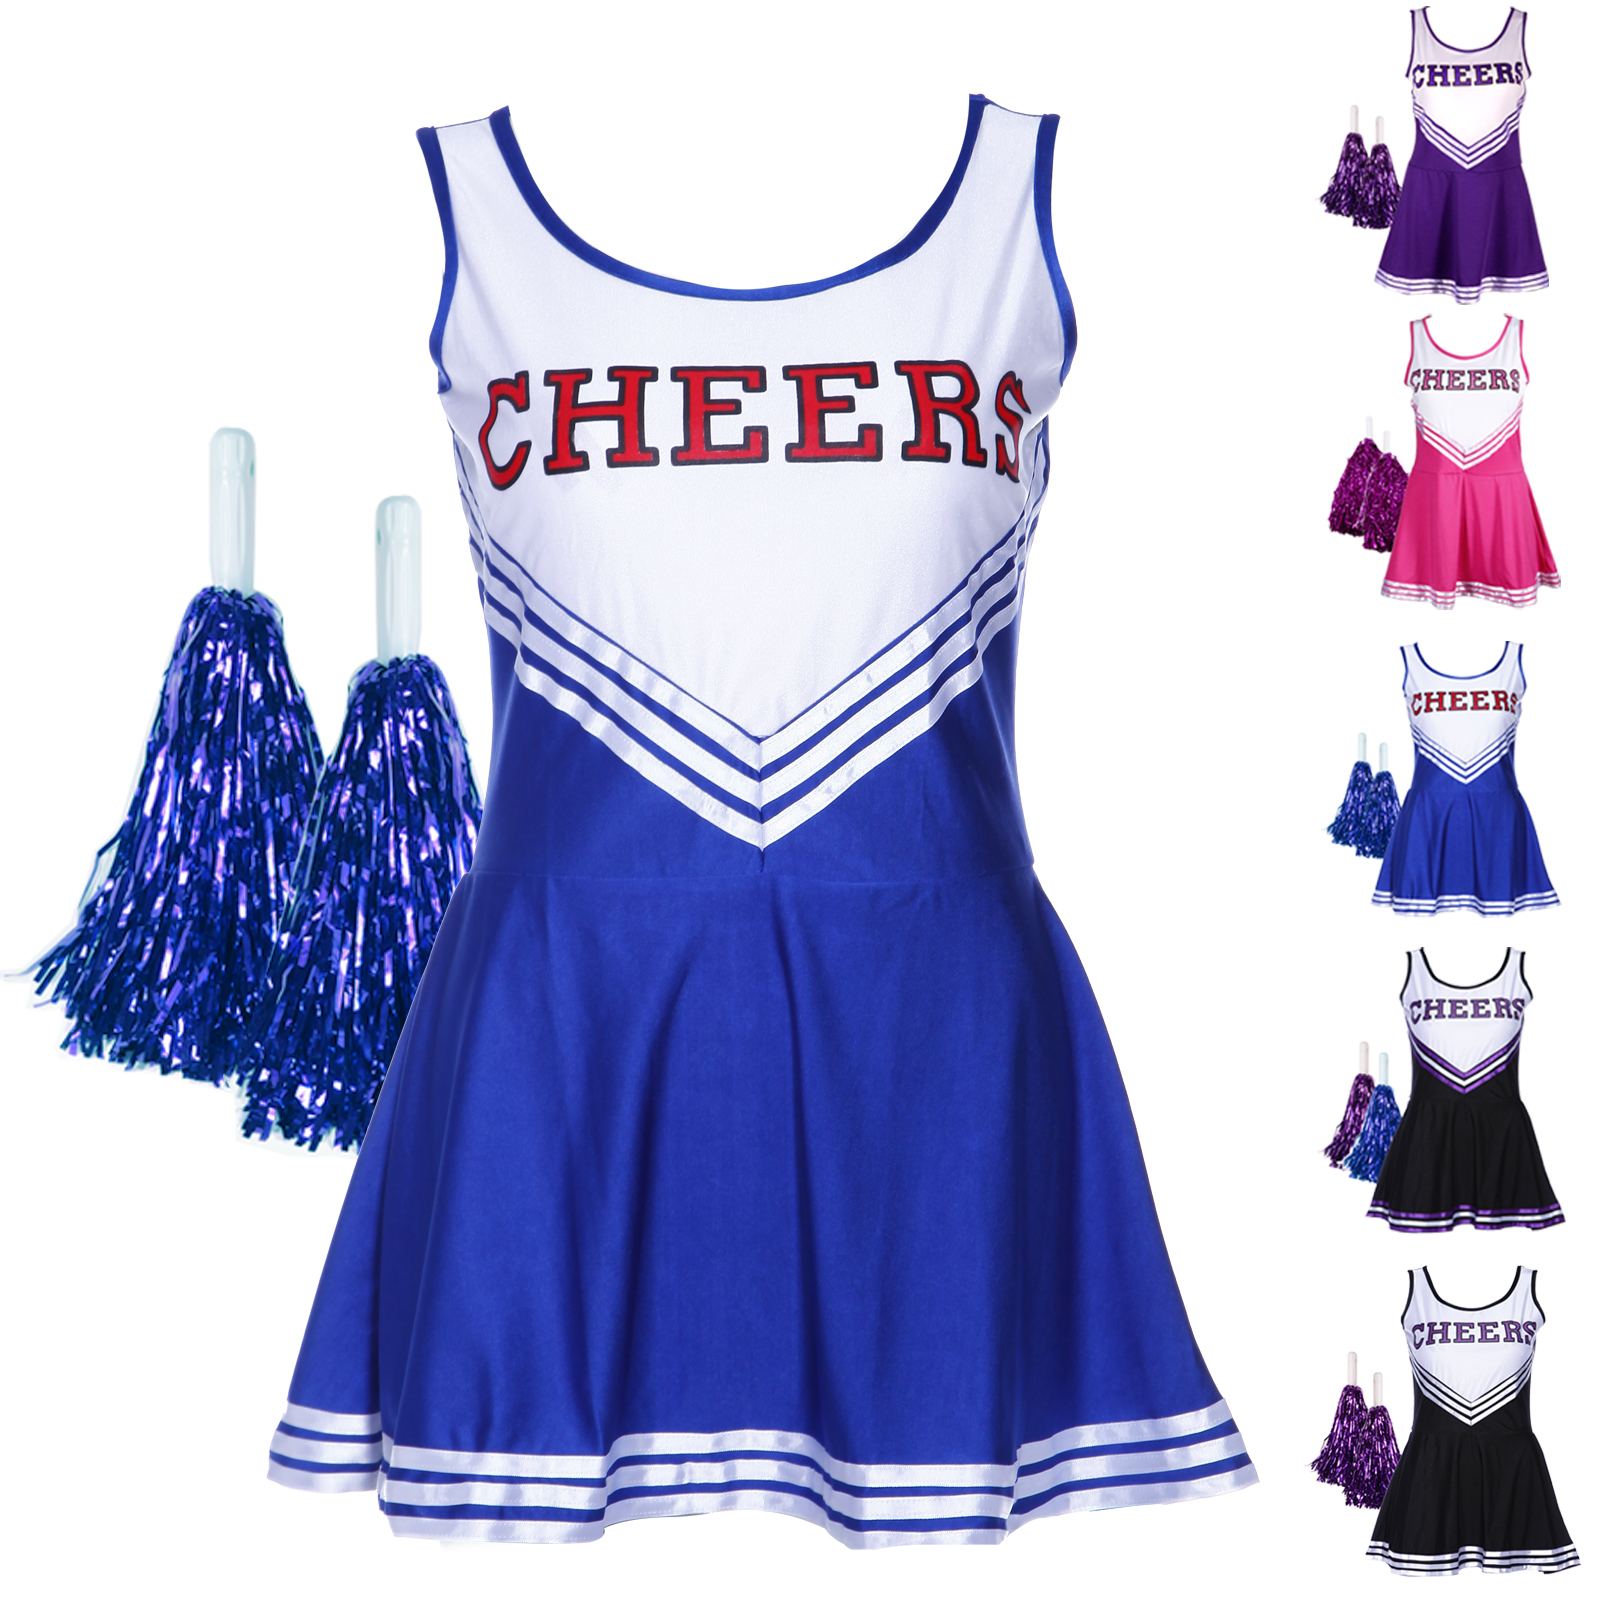 high school musical cheer girl cheerleader uniform costume outfit w pompoms pro ebay. Black Bedroom Furniture Sets. Home Design Ideas